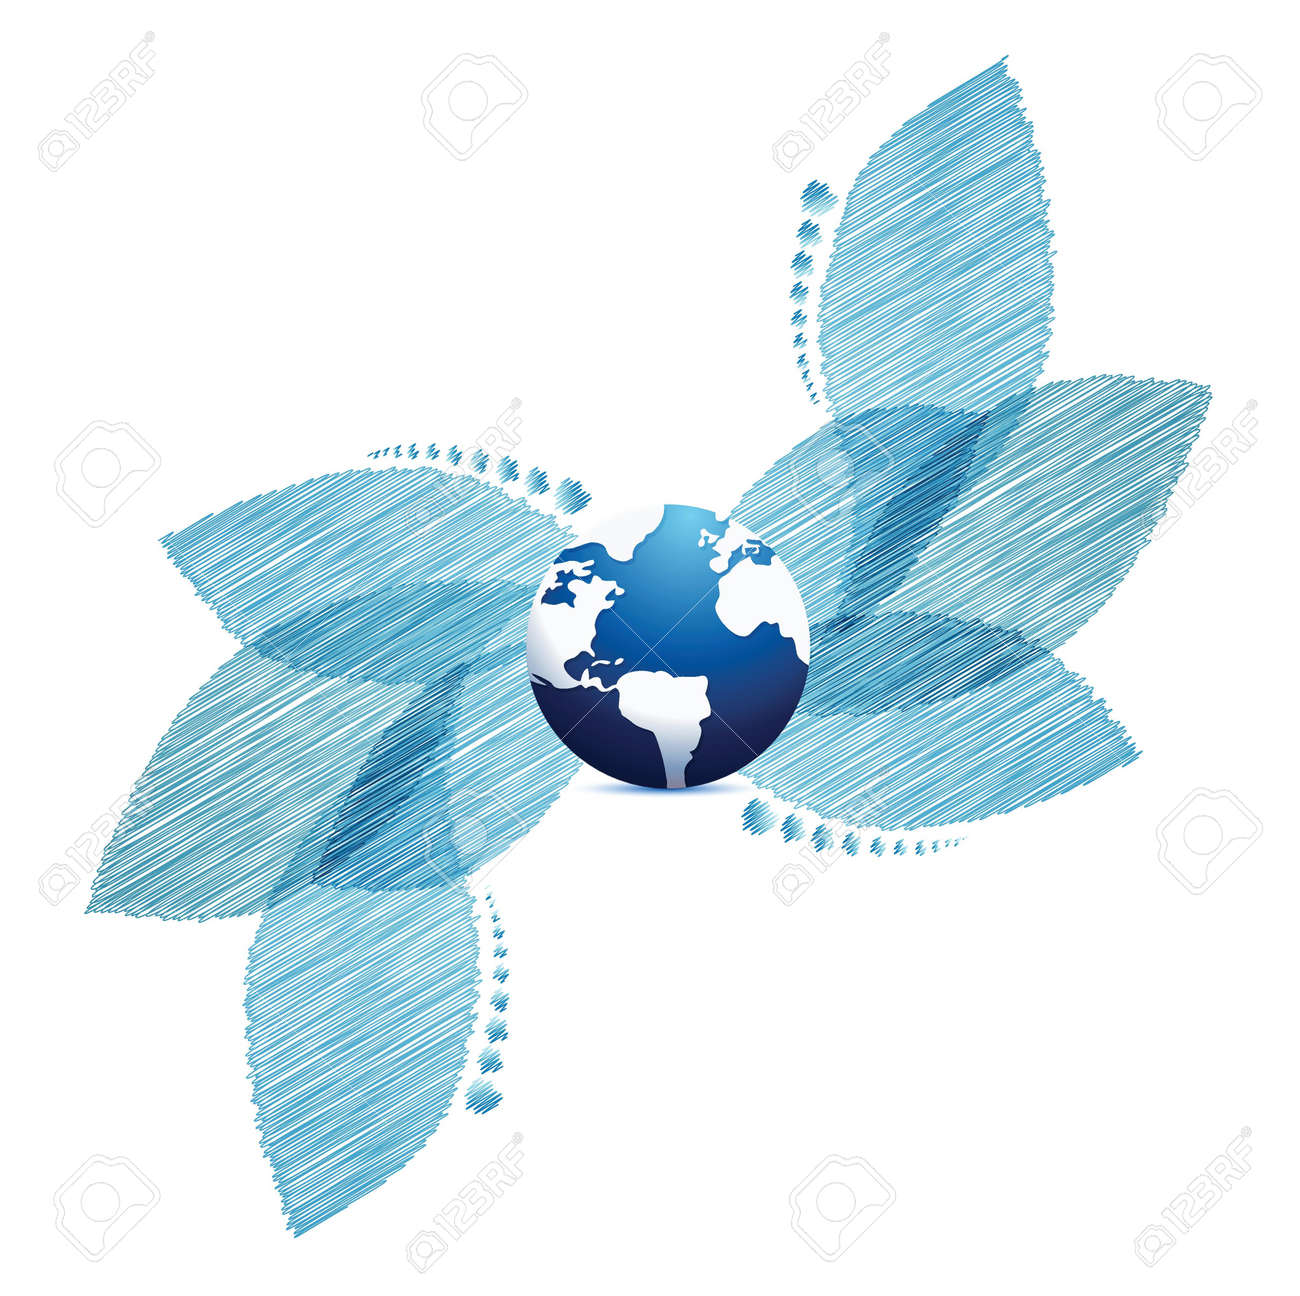 Bright background with blue leaves and globe illustration design Stock Vector - 20208559